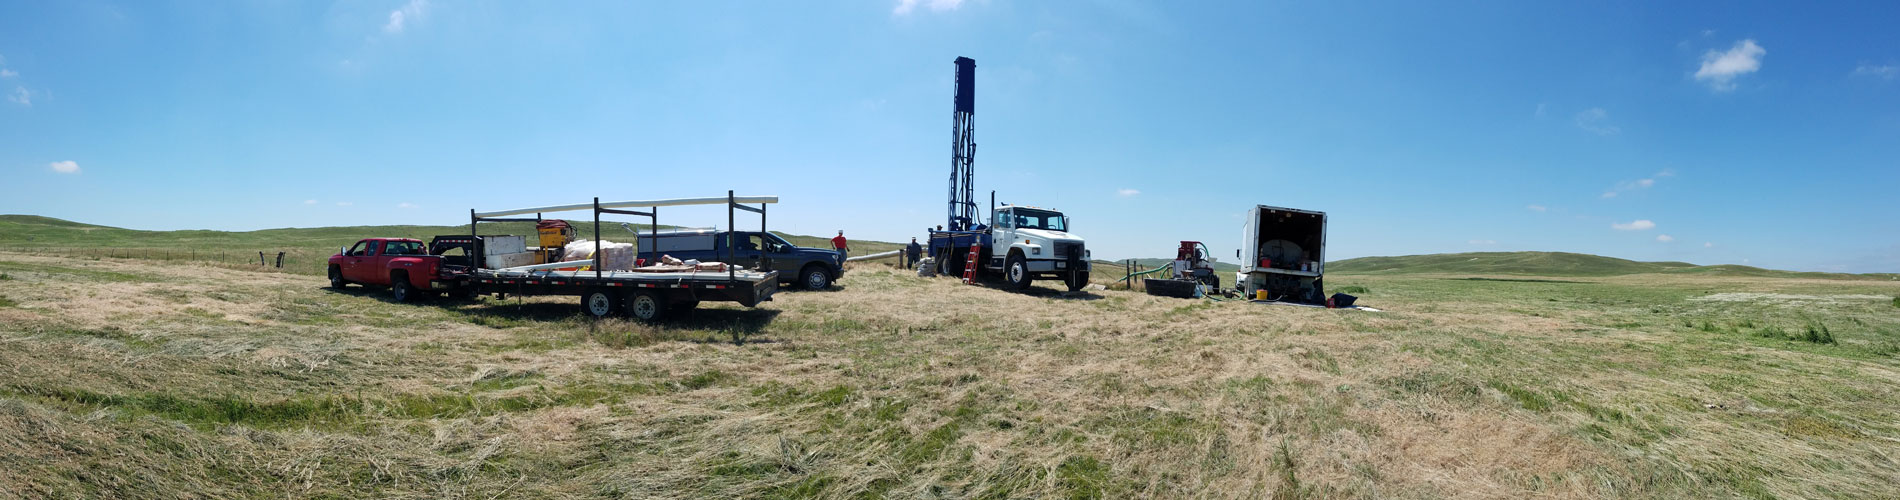 Drilling Rig at center